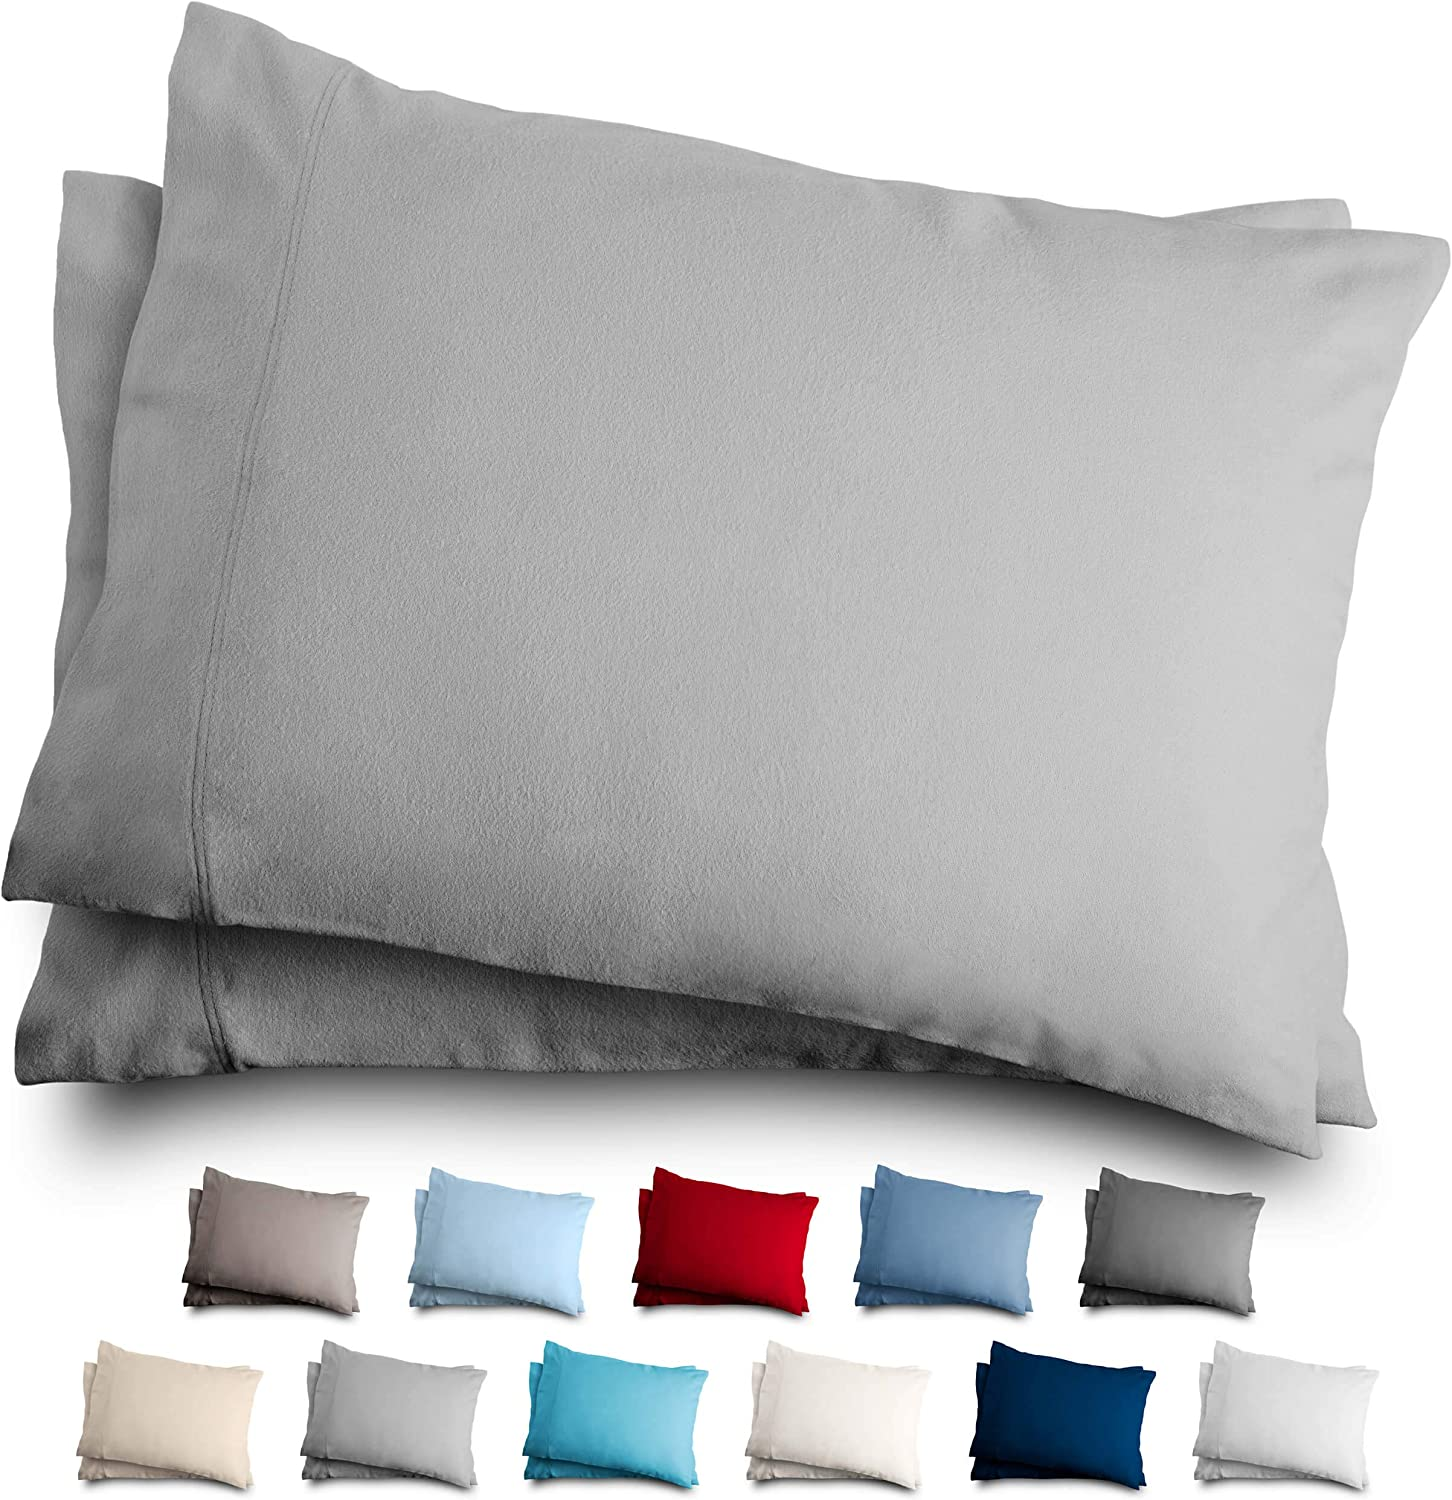 Bare Home King Flannel Pillowcase Set - 100% Cotton - Velvety Soft Heavyweight - Double Brushed Flannel (King Pillowcase Set of 2, Light Grey)